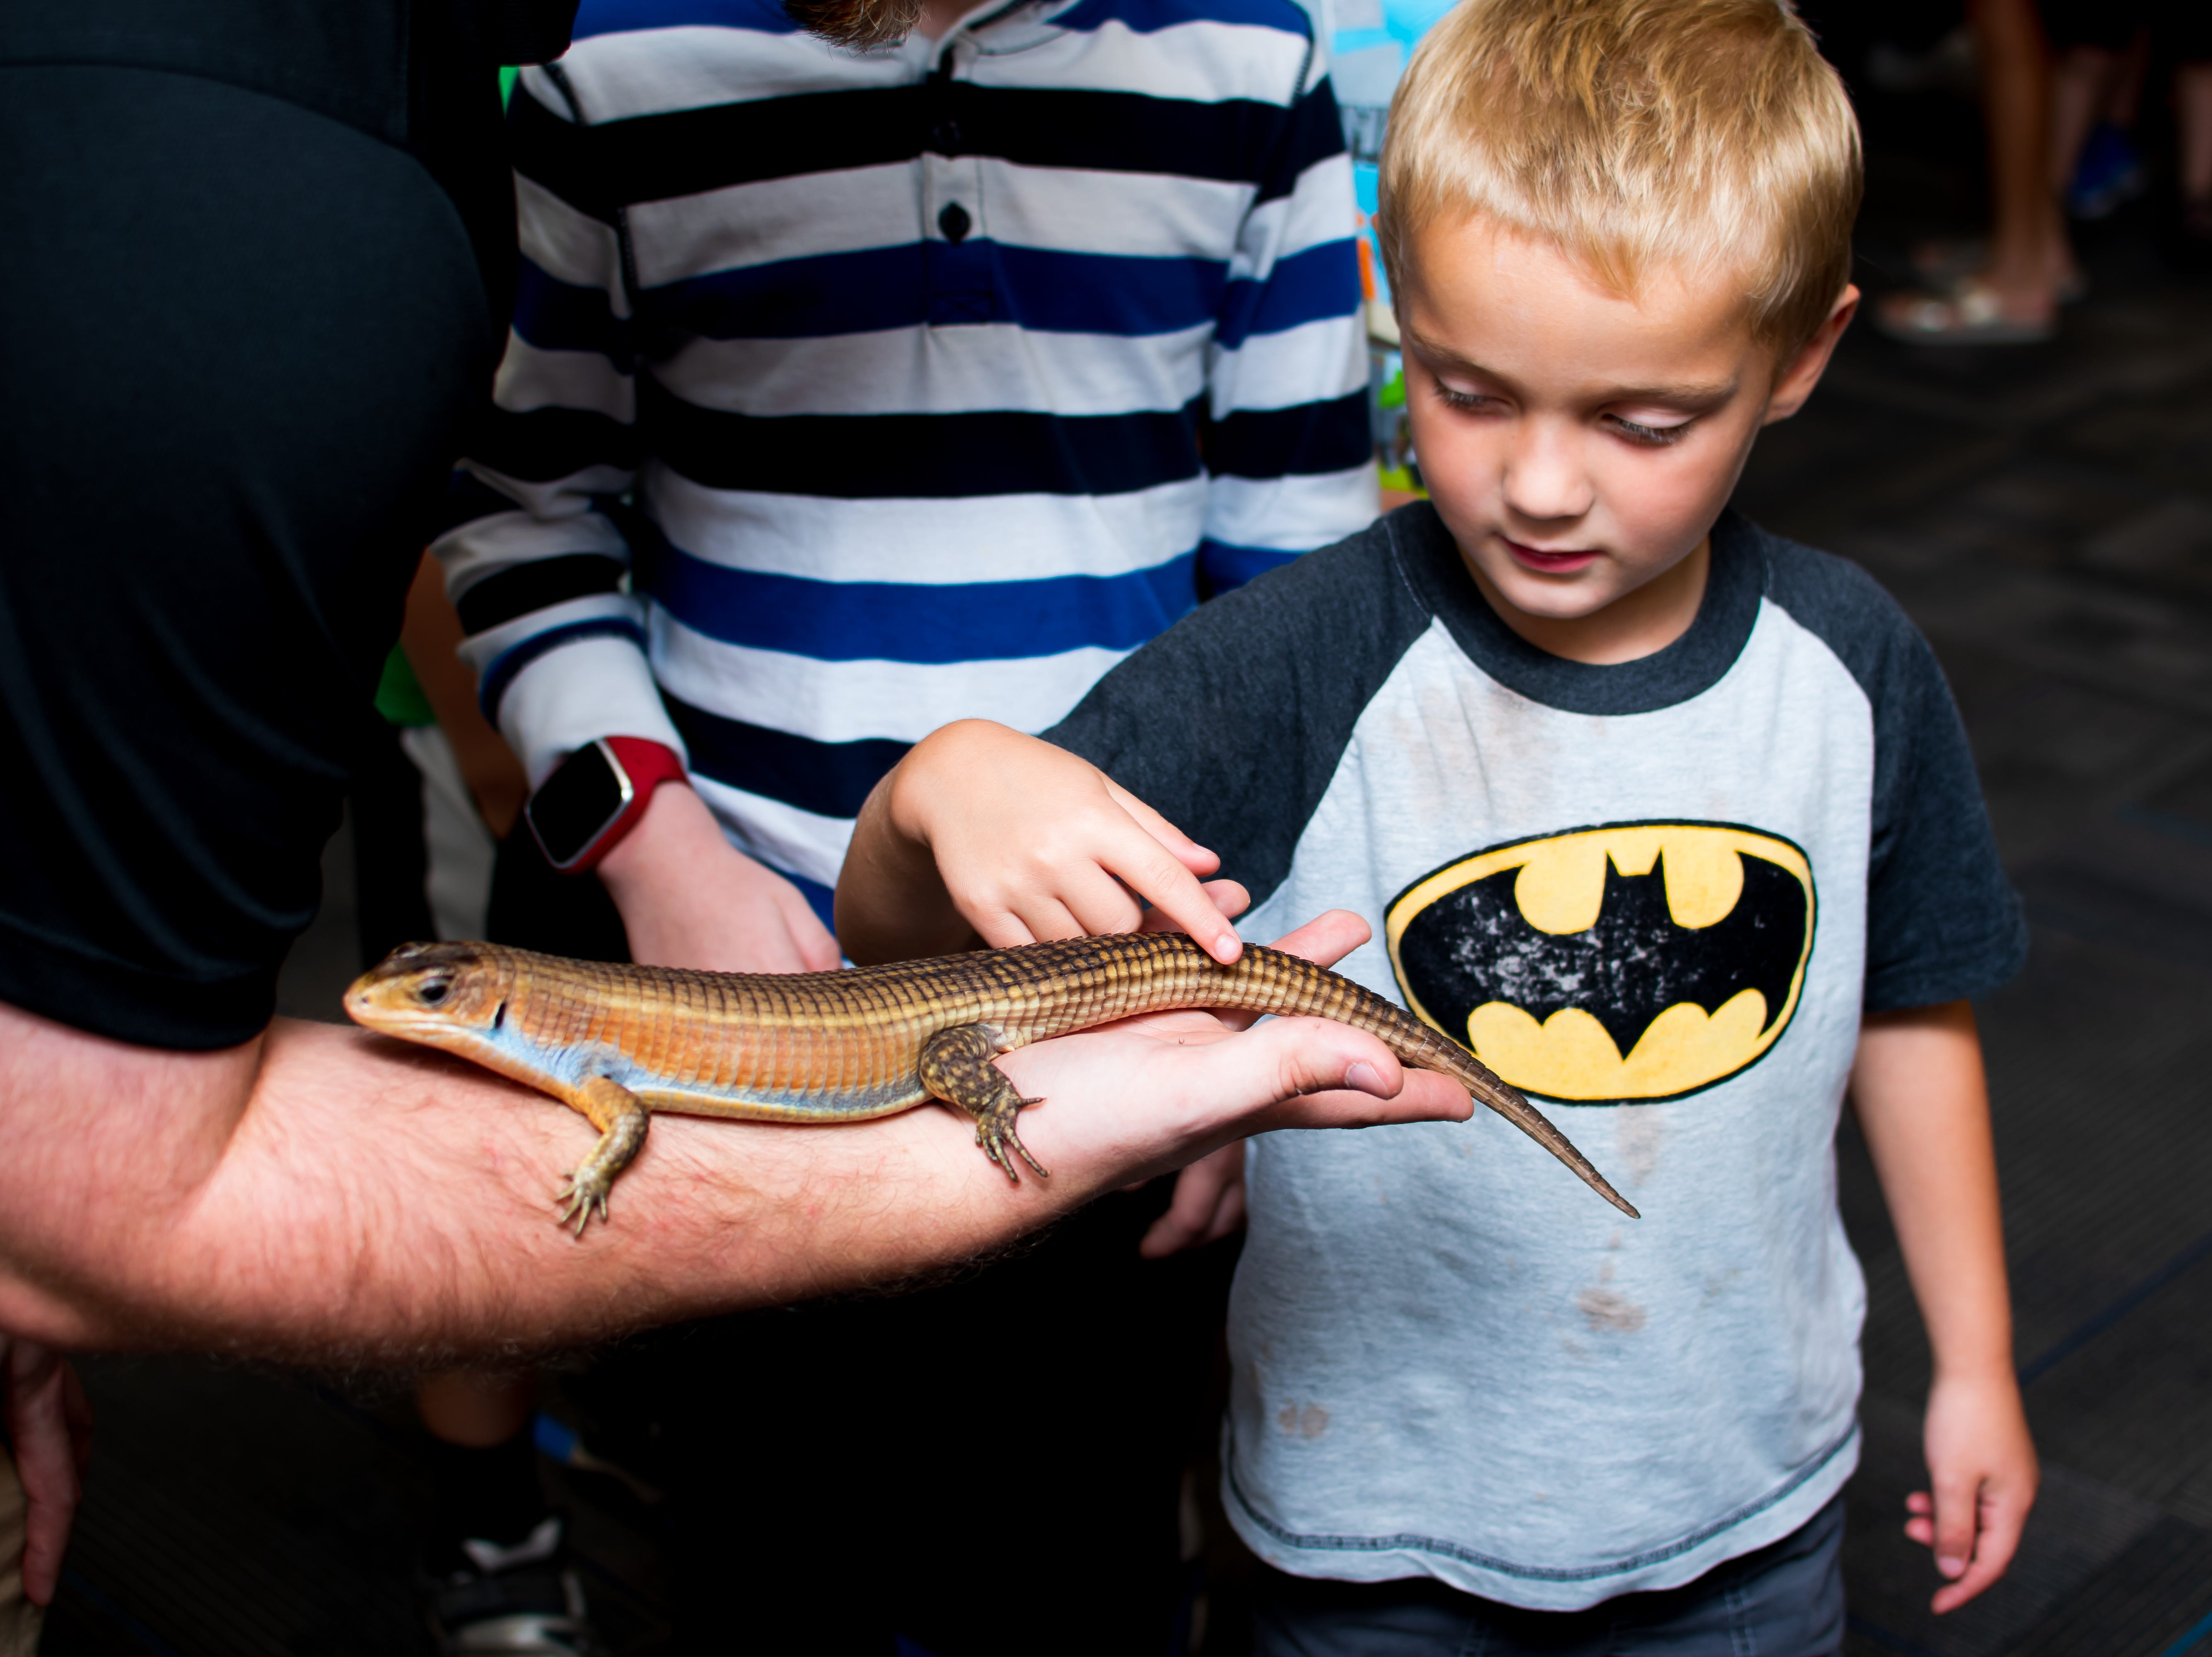 Cameron Evans, 4, of Cumming, touches a plated lizard named Niles on Thursday, September 20, 2018 at the Clive Public Library's Zoo Show and Tell in Clive.